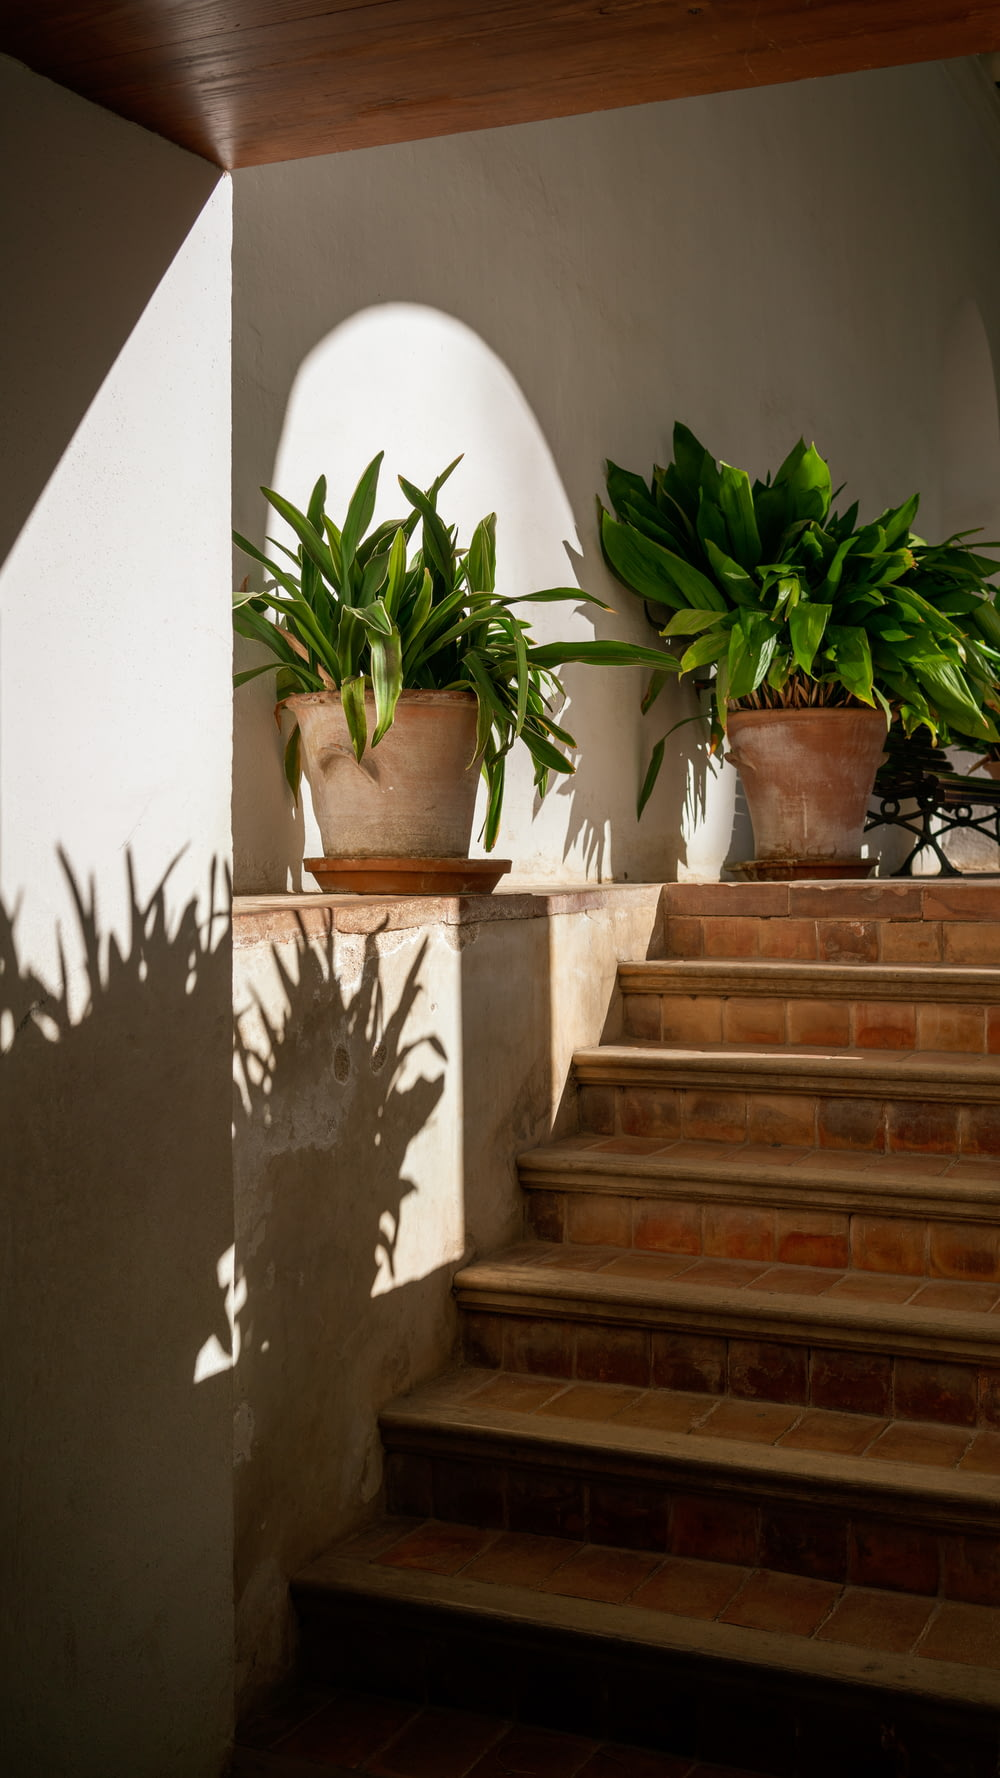 two green-leafed potted plants in the staircase